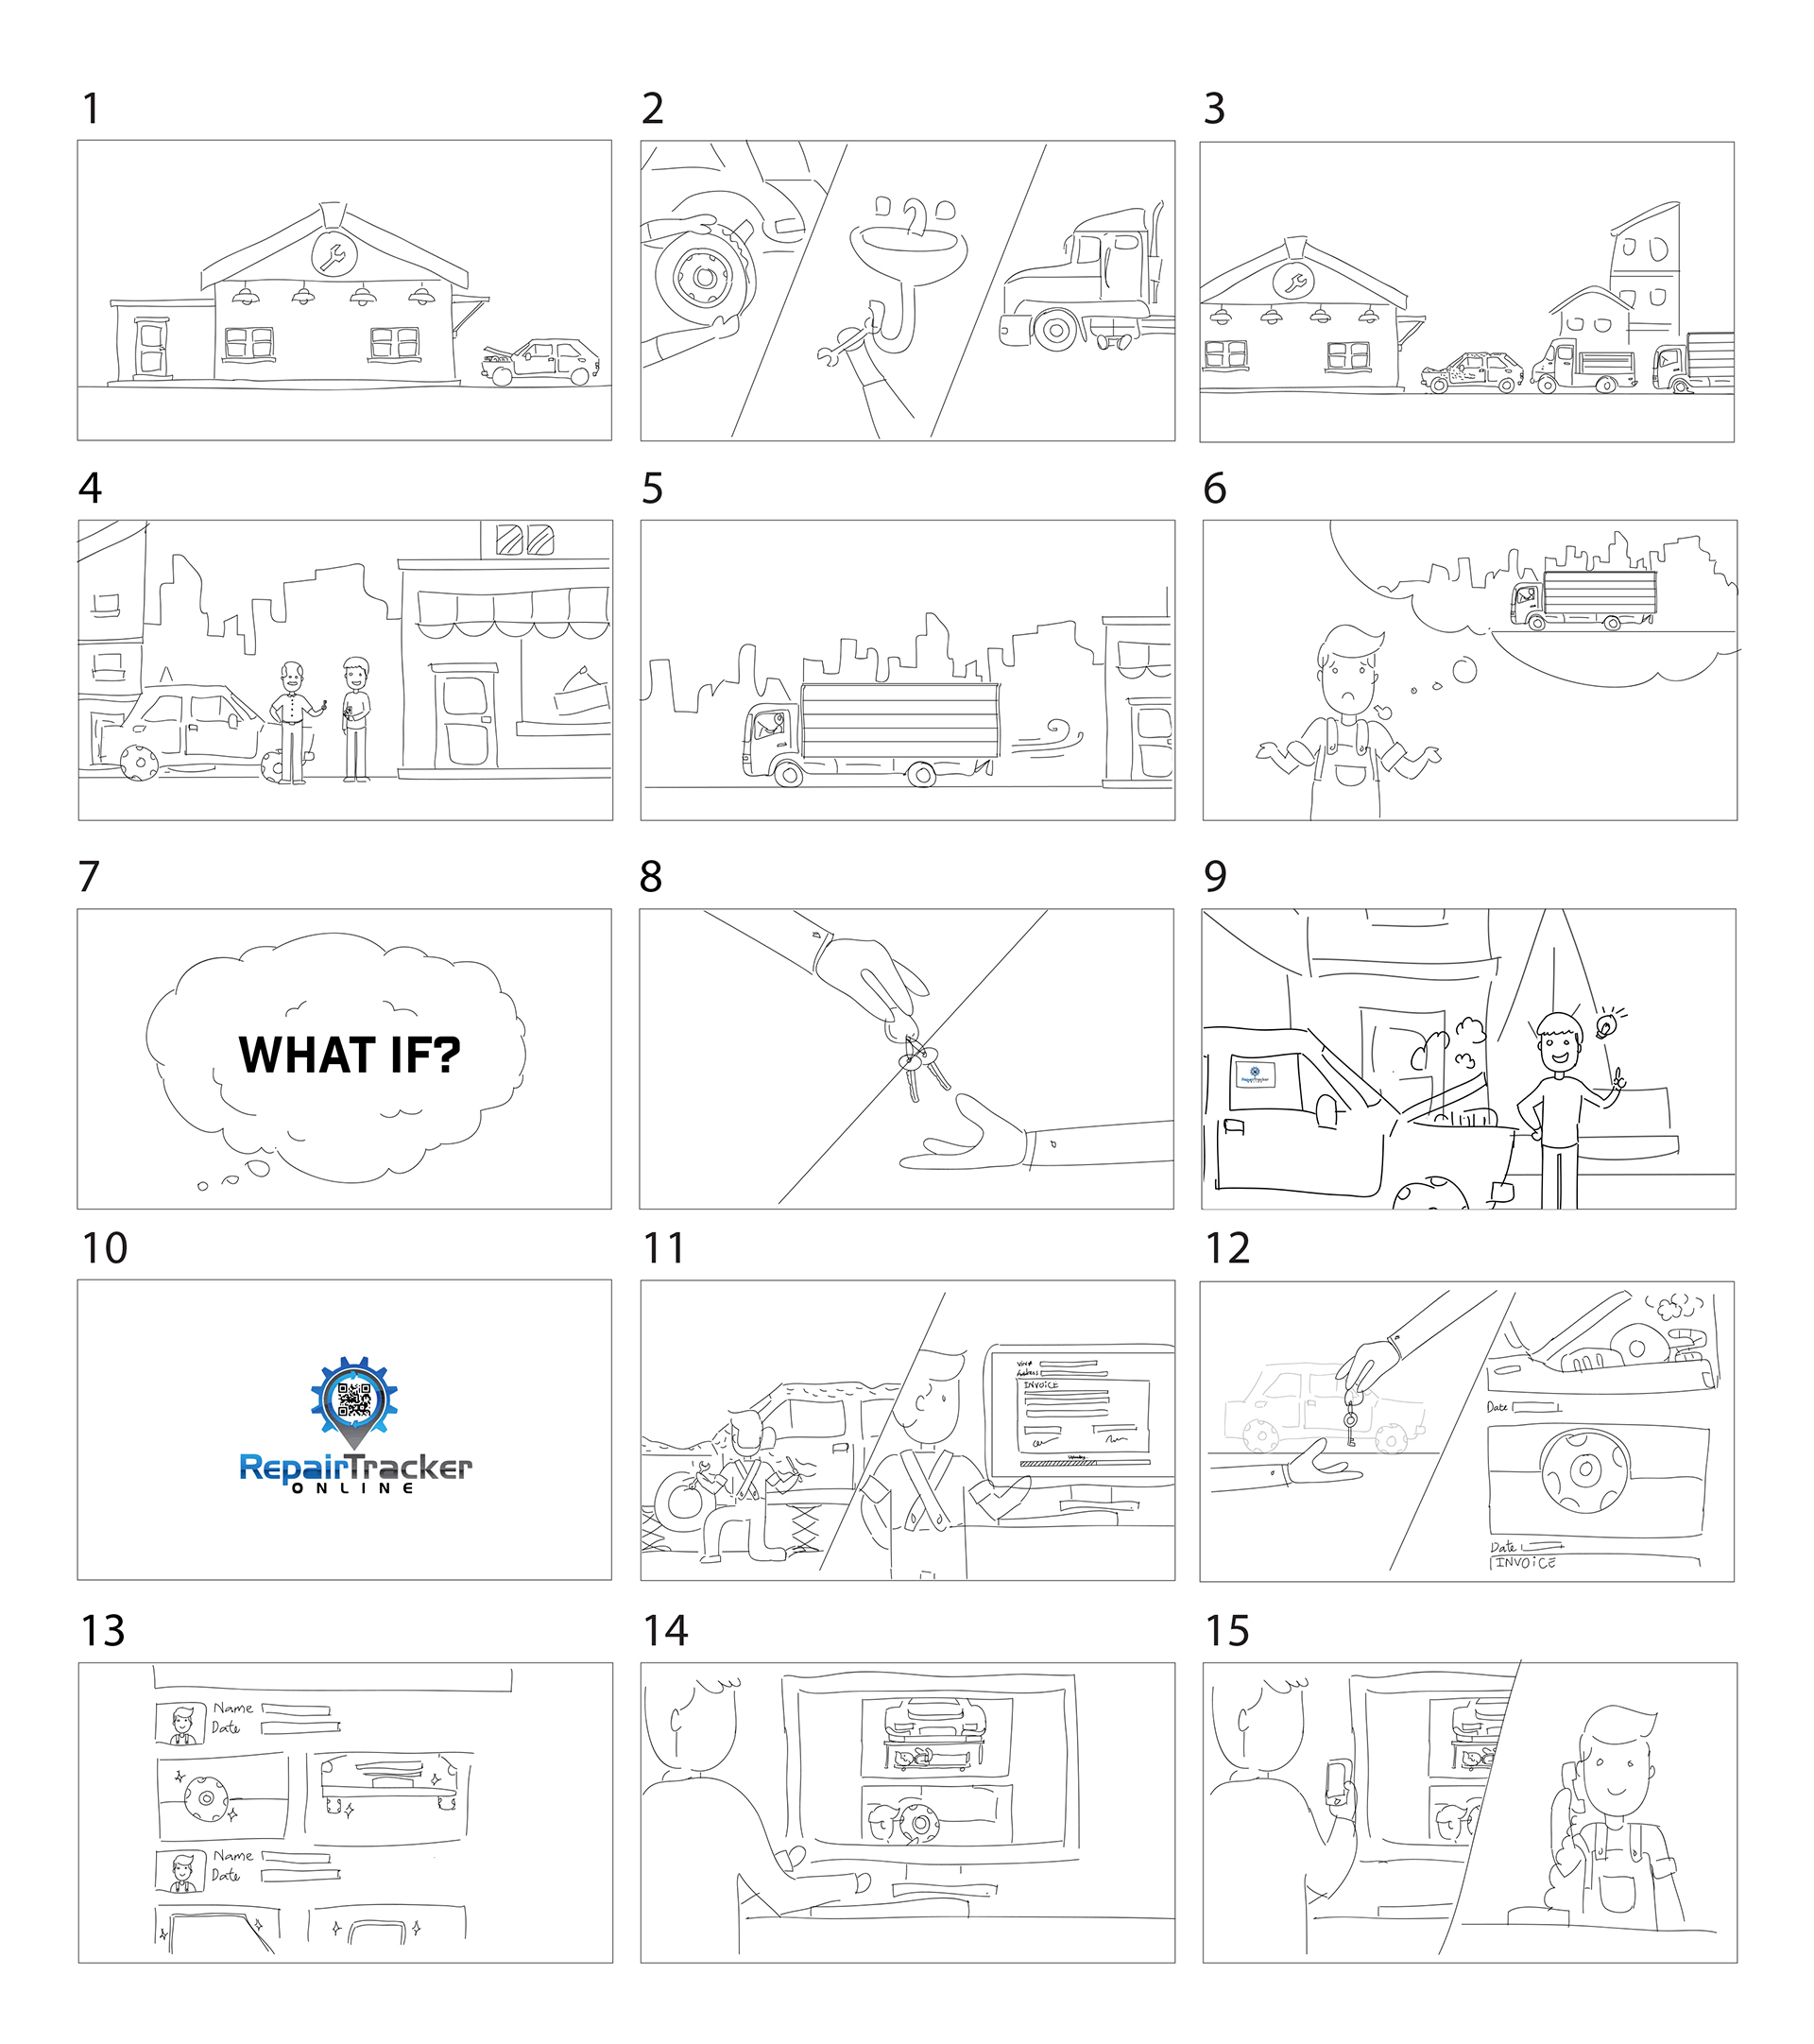 RepairTracker_Sketch_Storyboard_150525-1.jpg